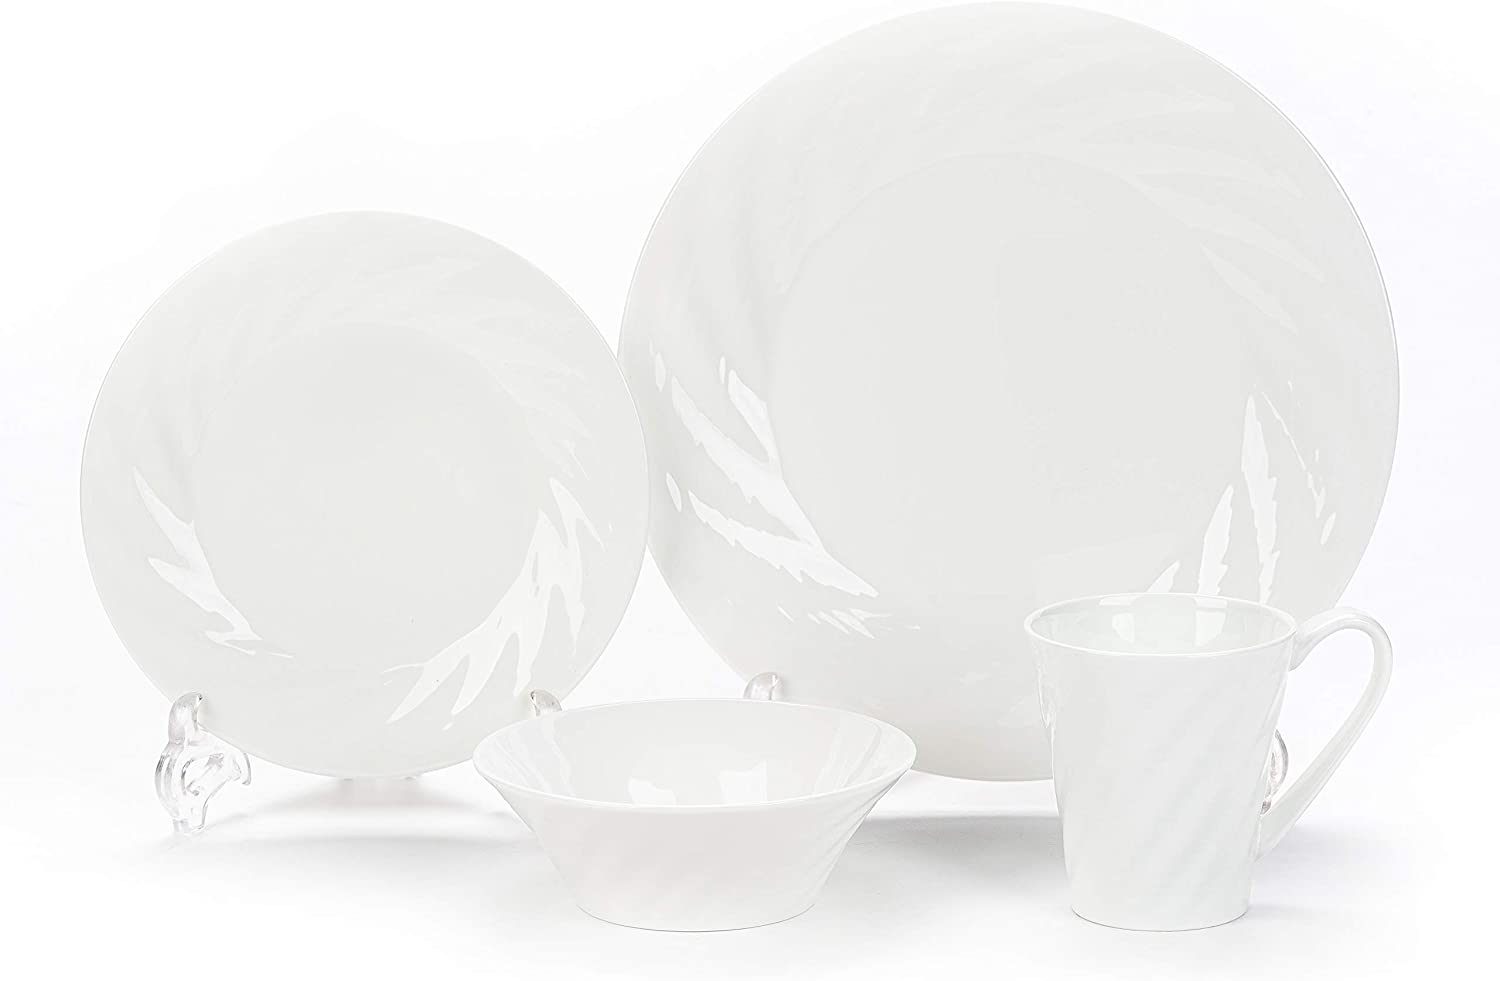 4 Piece Bone China Dinnerware Set, Dishes,Bowls,Cups,Service for 1,White